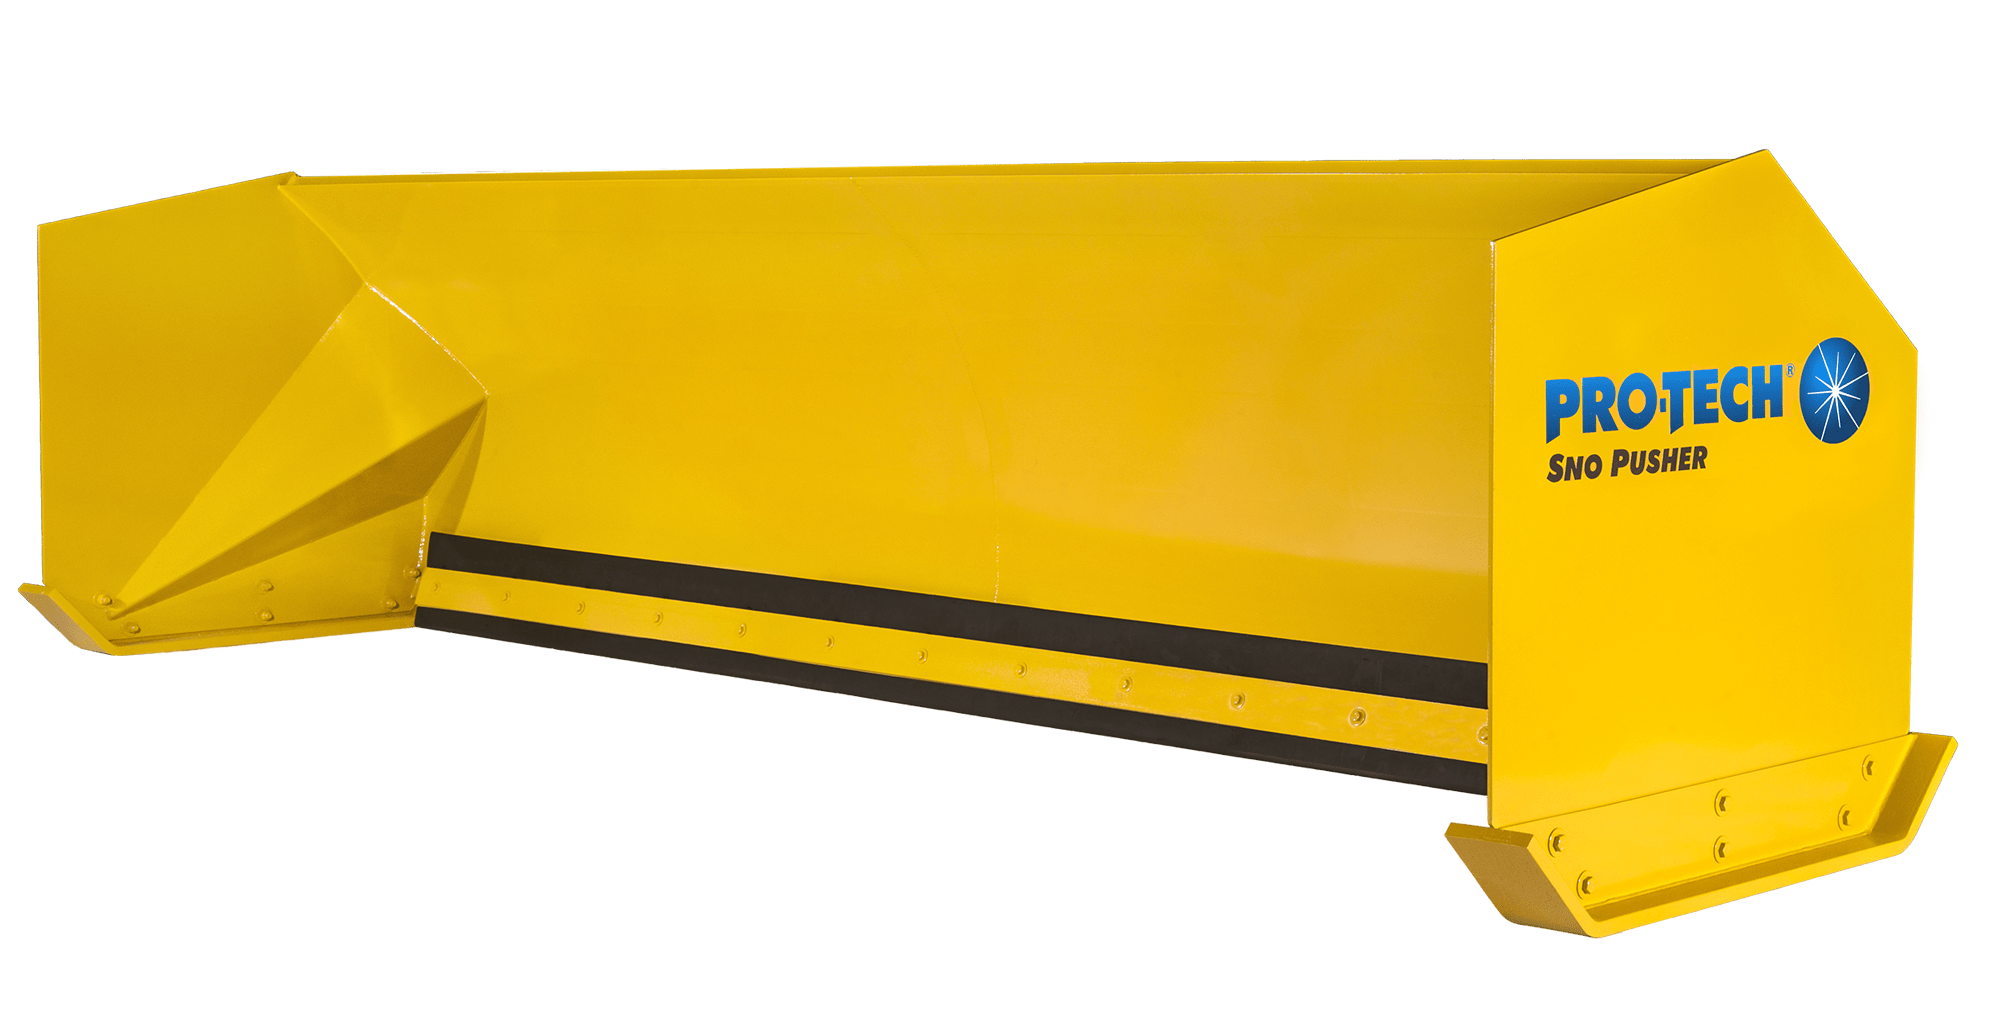 Pro Tech Sno Pusher Snow Pushers Plows And Containment Fisher Plow Hydraulic Wiring Diagram Rubber Edge